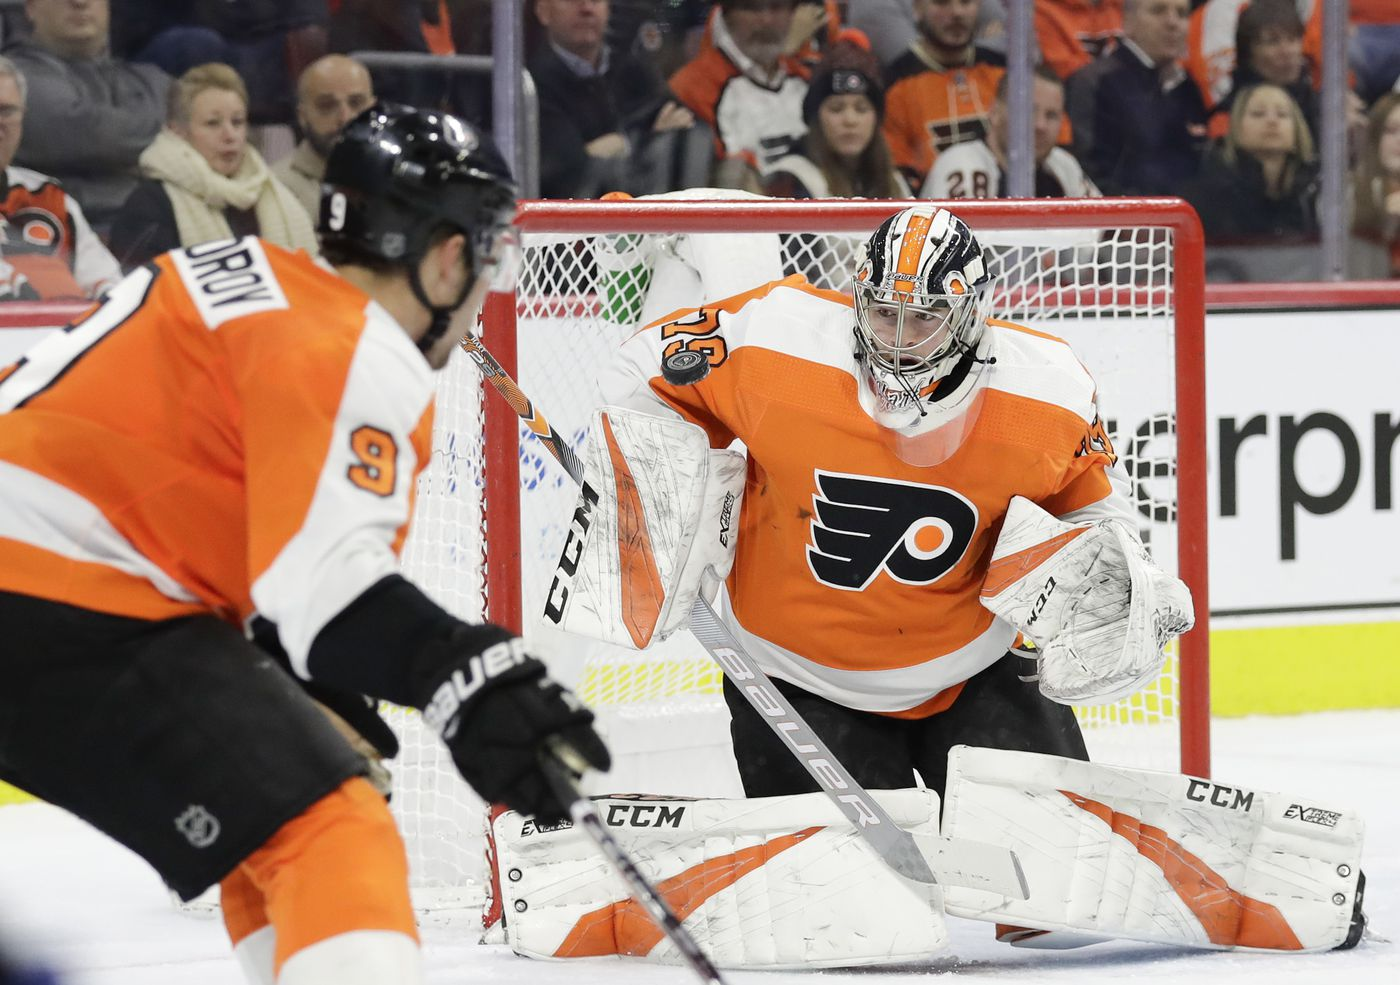 Carter Hart has made the Flyers better pretty much by himself   Mike Sielski